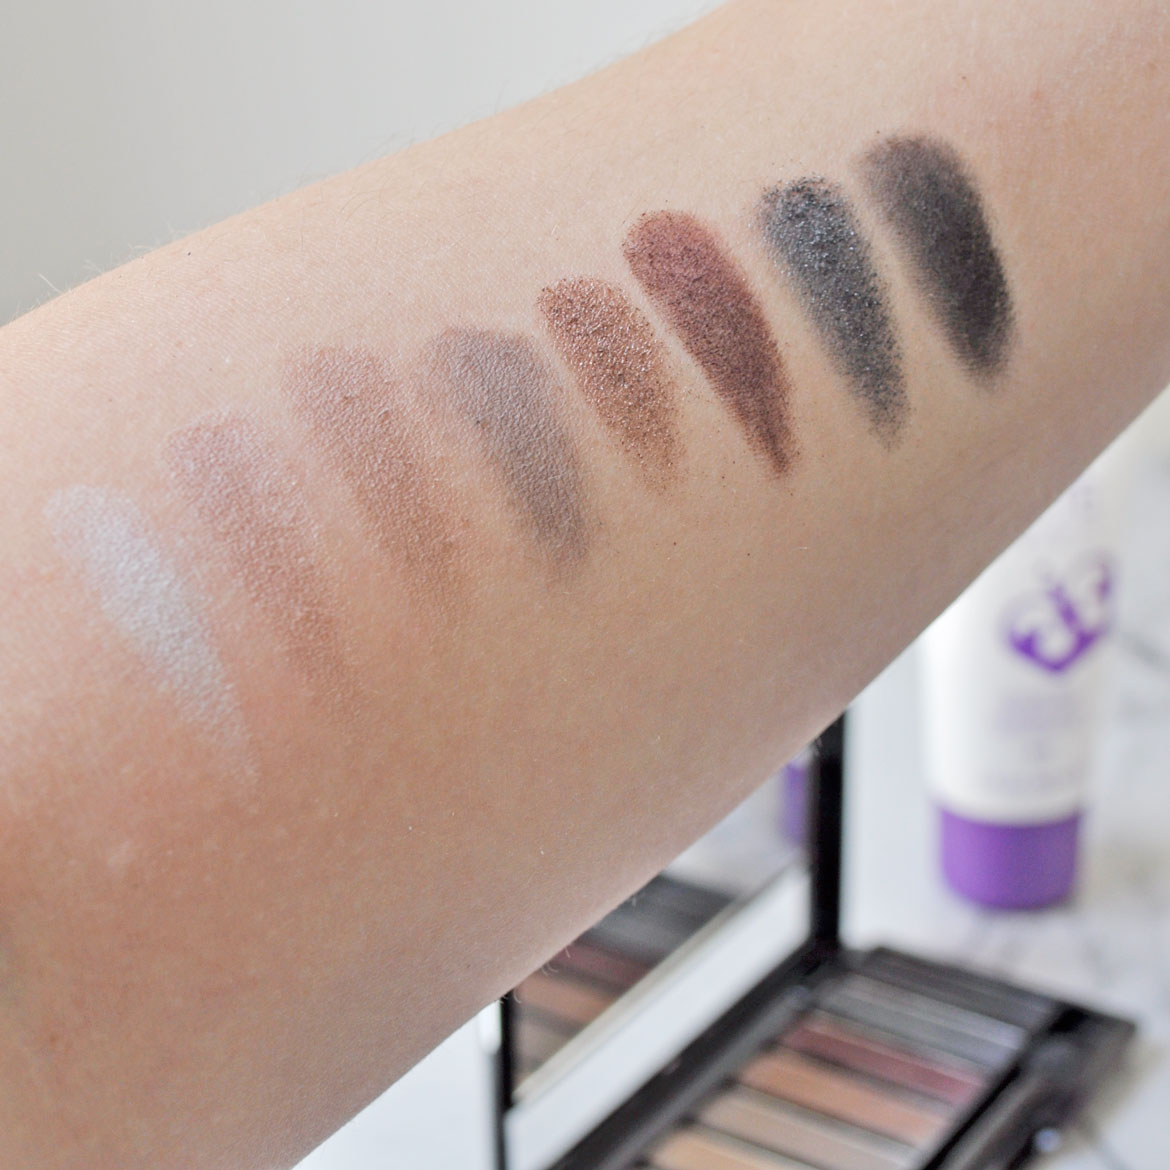 rimmel-magnifieyes-palette-swatches